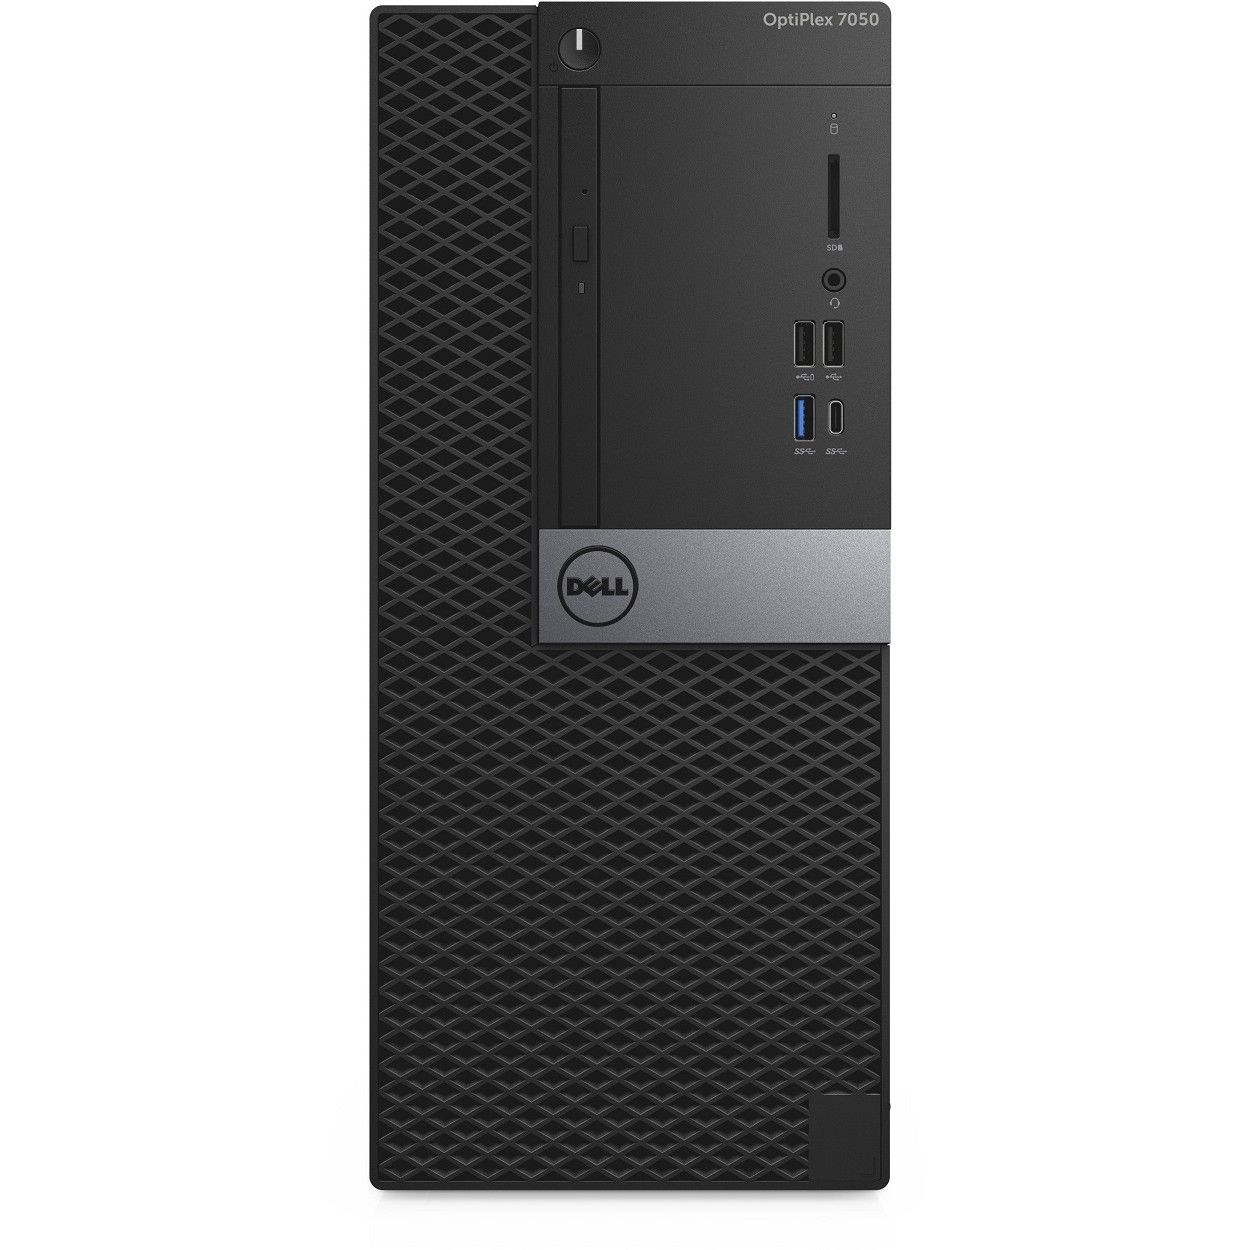 Sistem Brand Dell OptiPlex 7050 MT Intel Core i5-7500 RAM 4GB HDD 500GB Windows 10 Pro